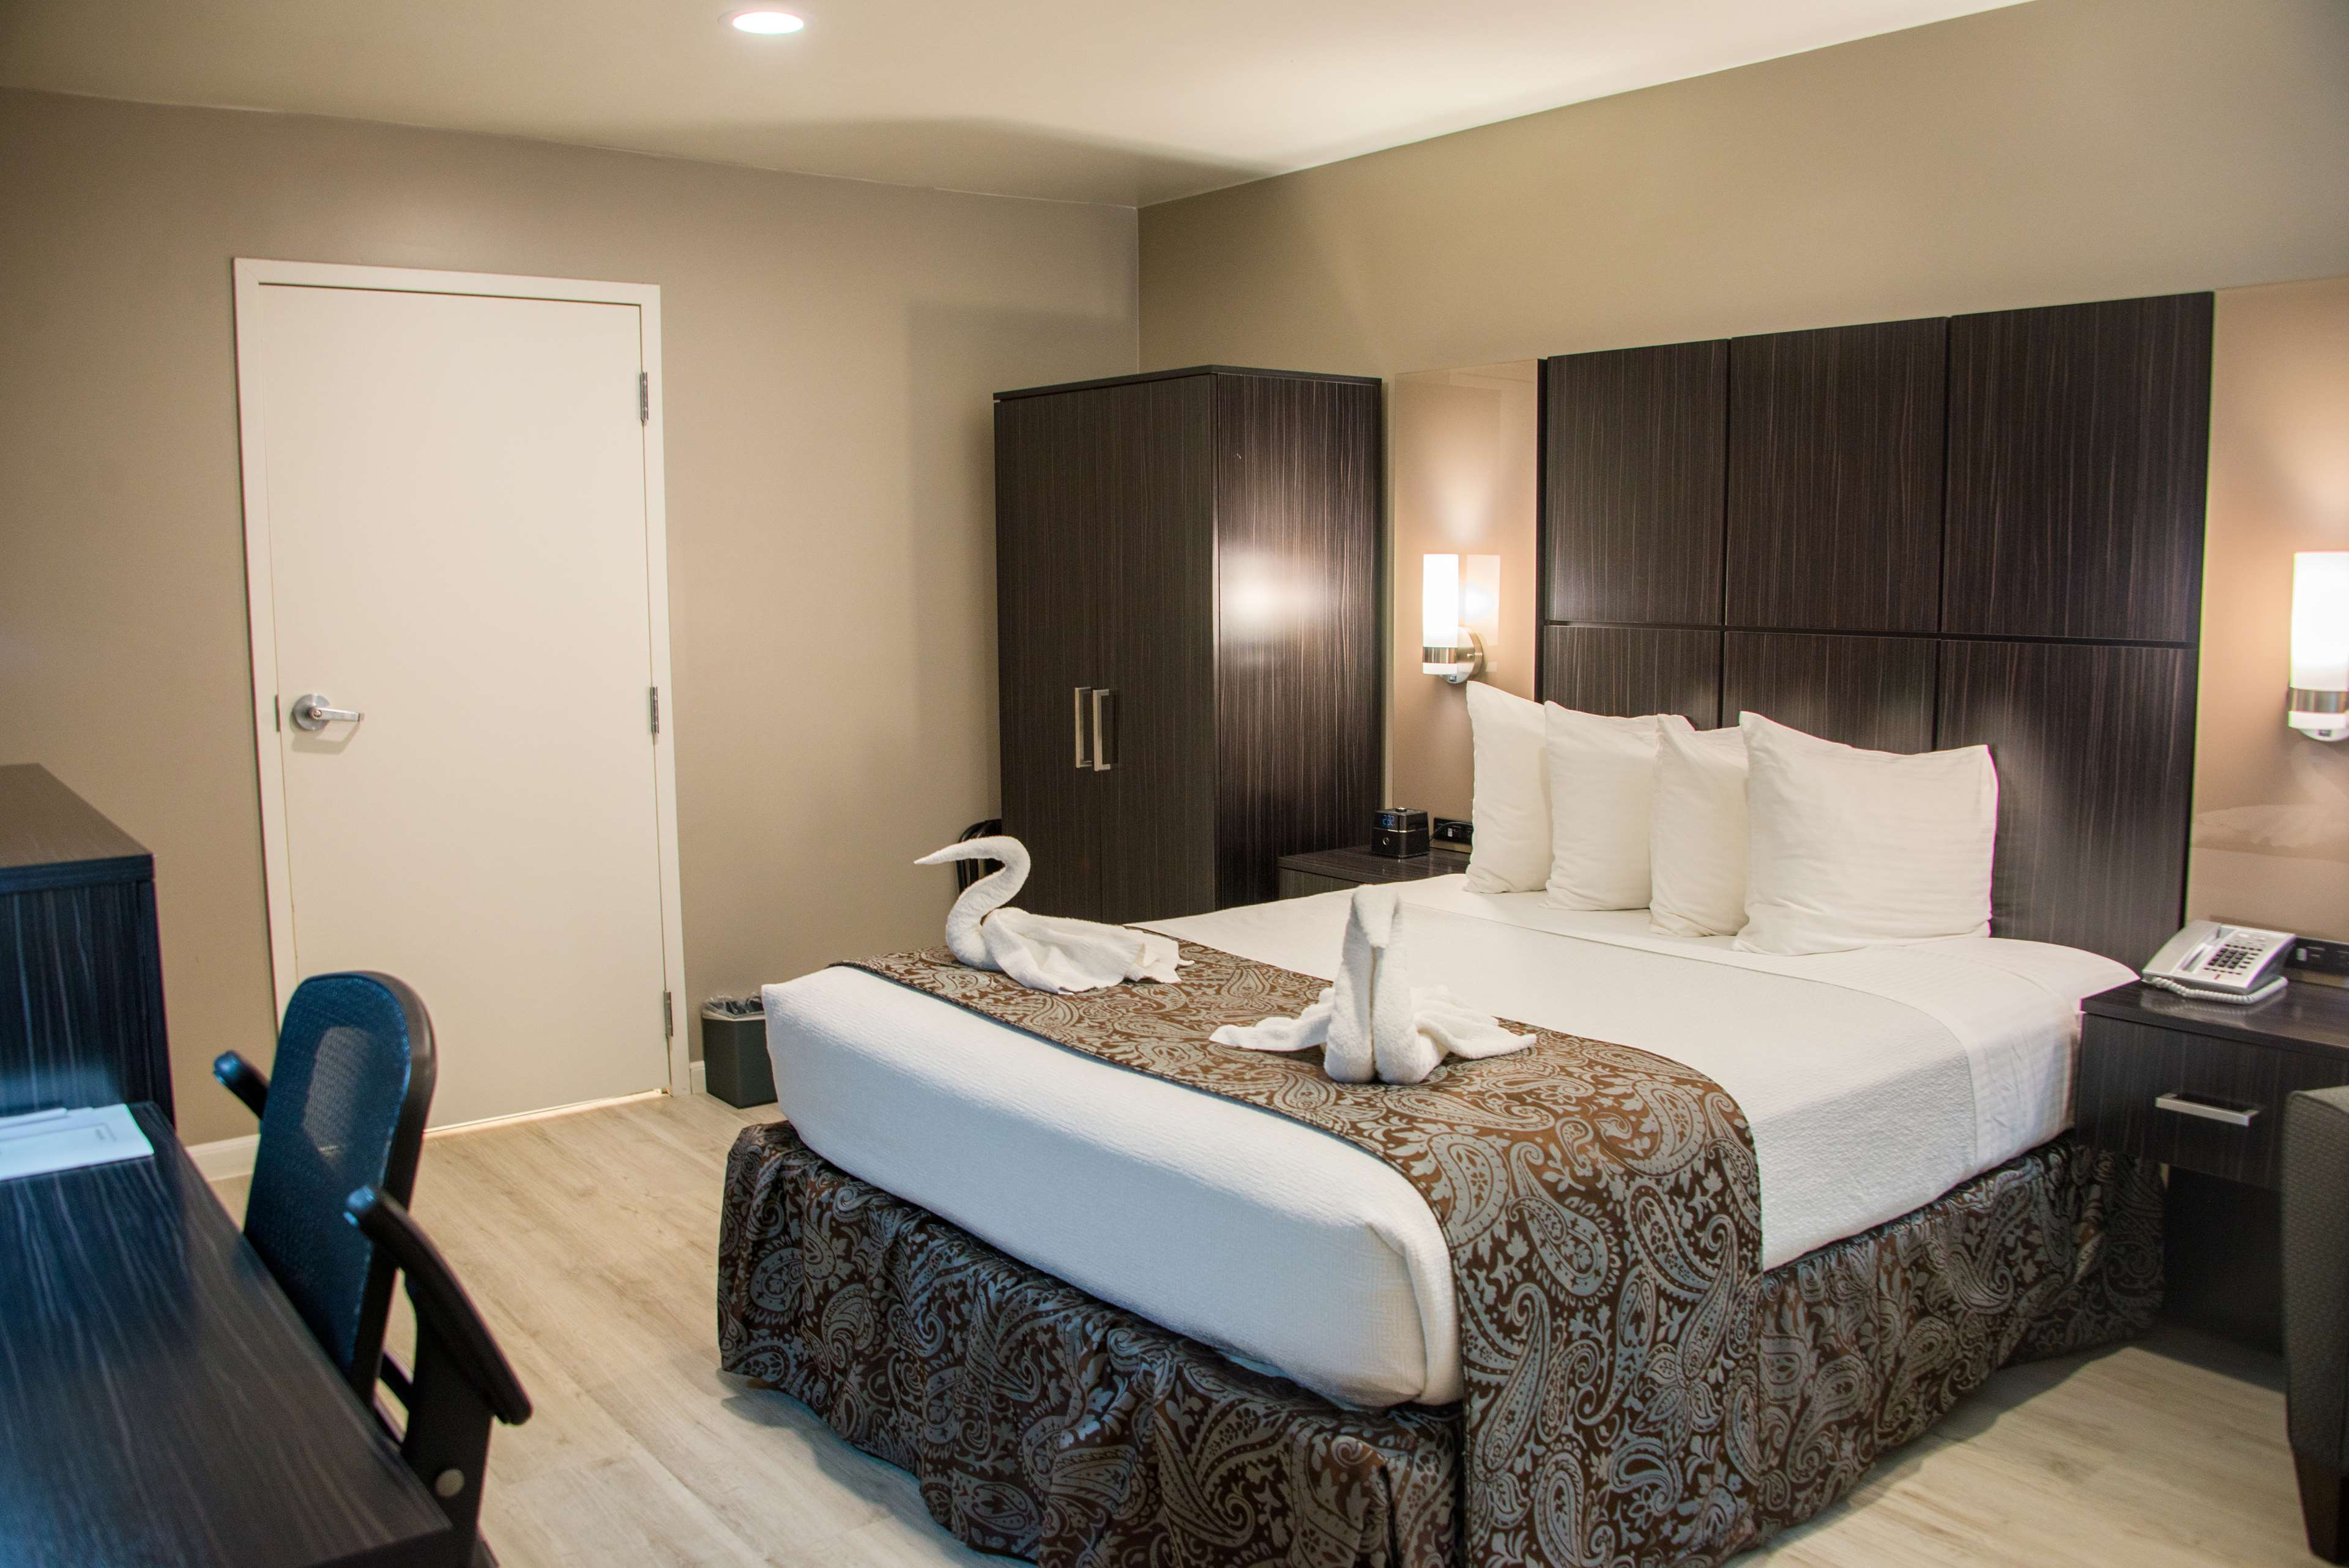 SureStay Plus by Best Western Santa Clara Silicon Valley image 7